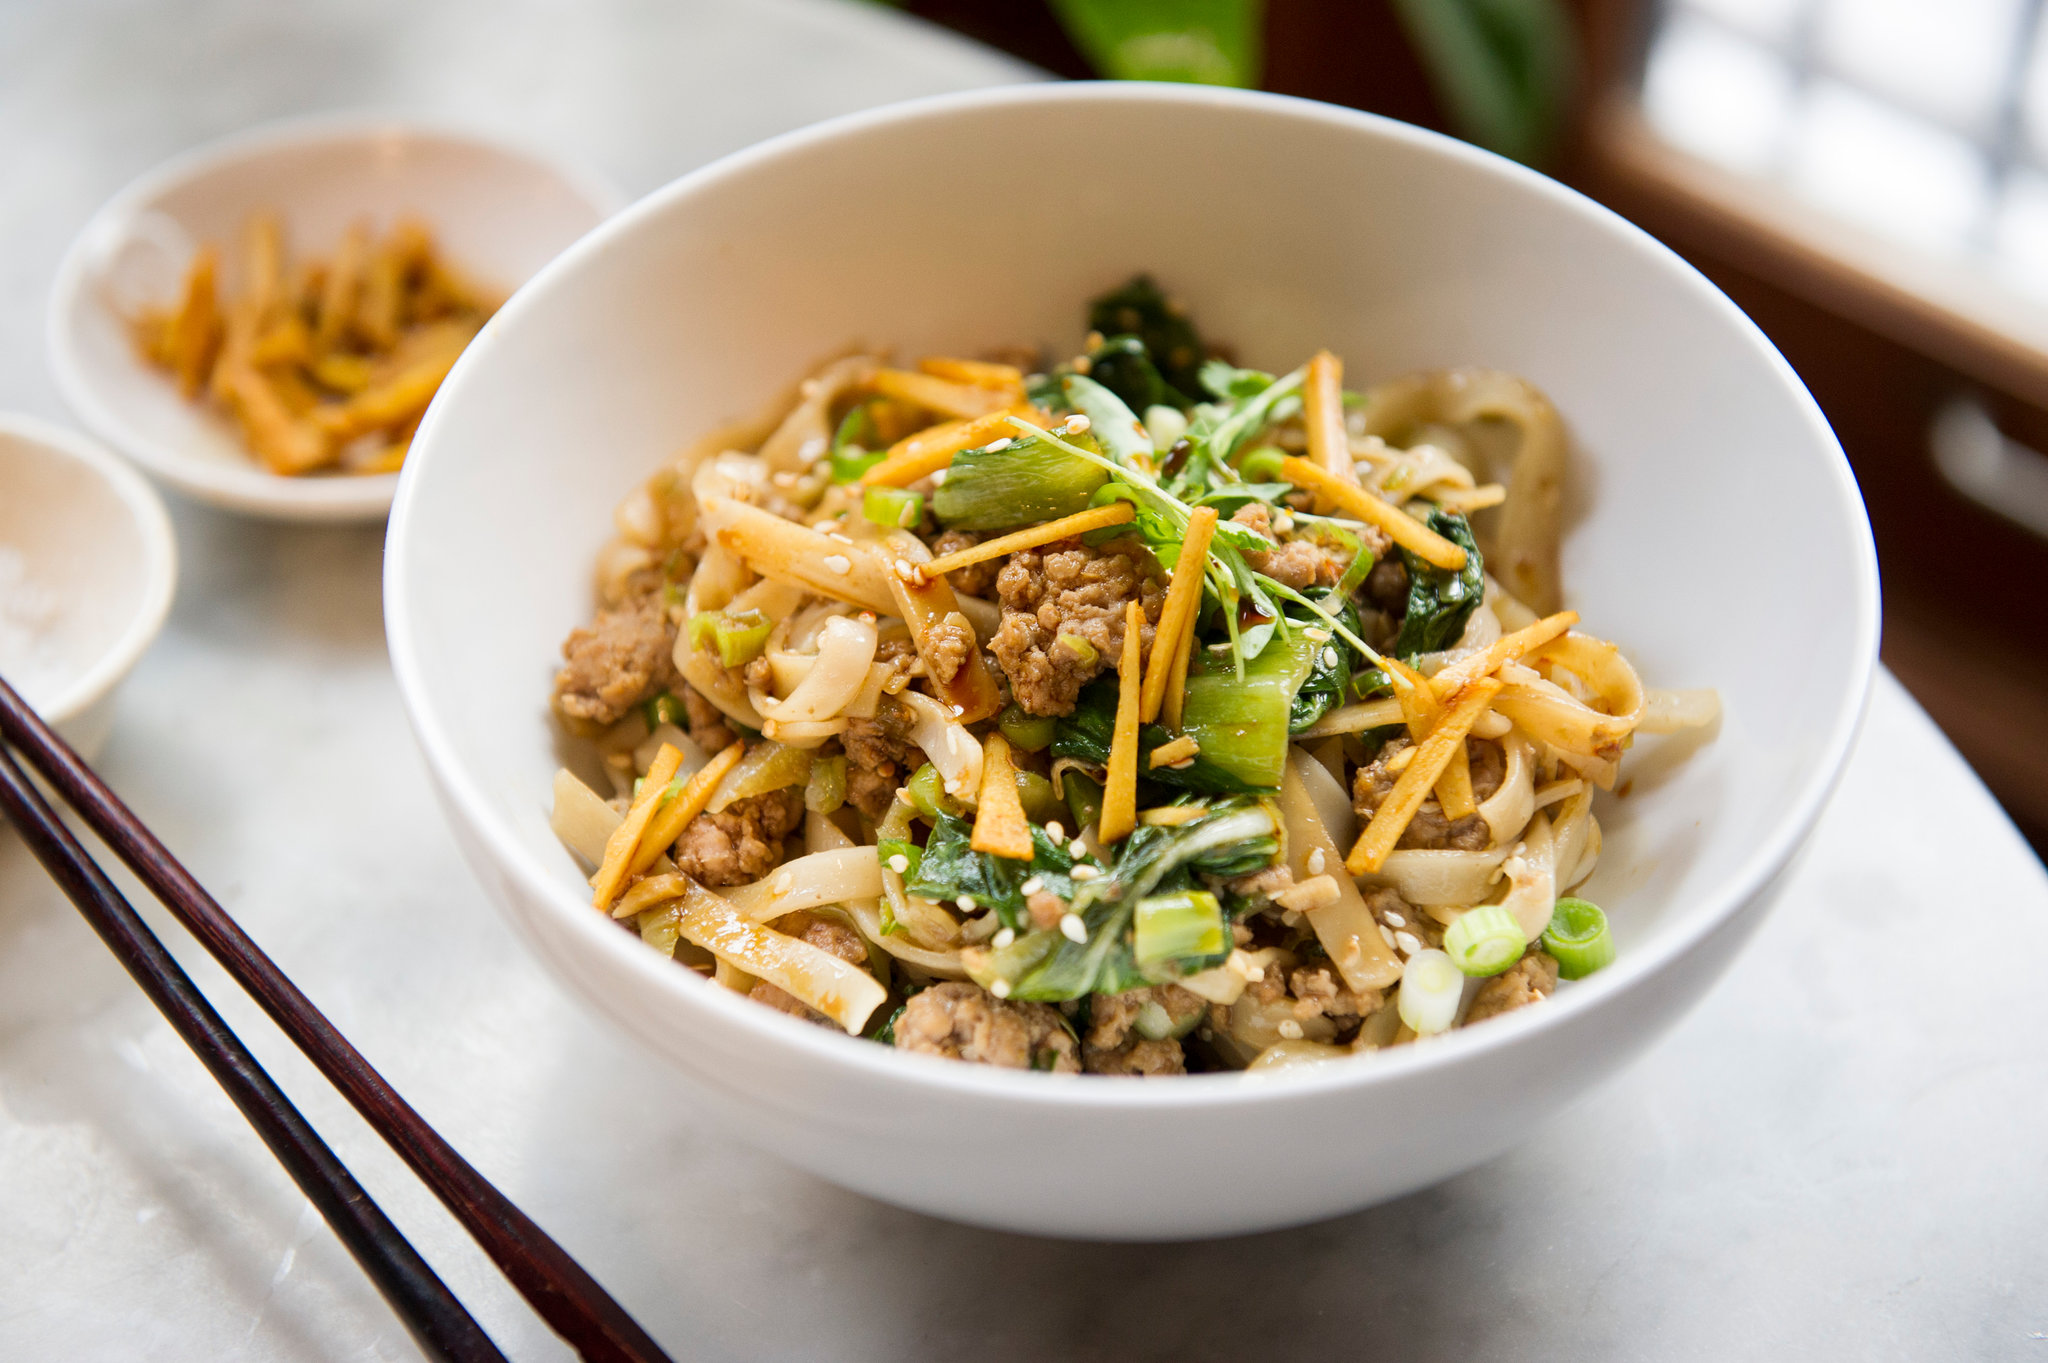 Spicy Ginger Pork Noodles With Bok Choy Recipe